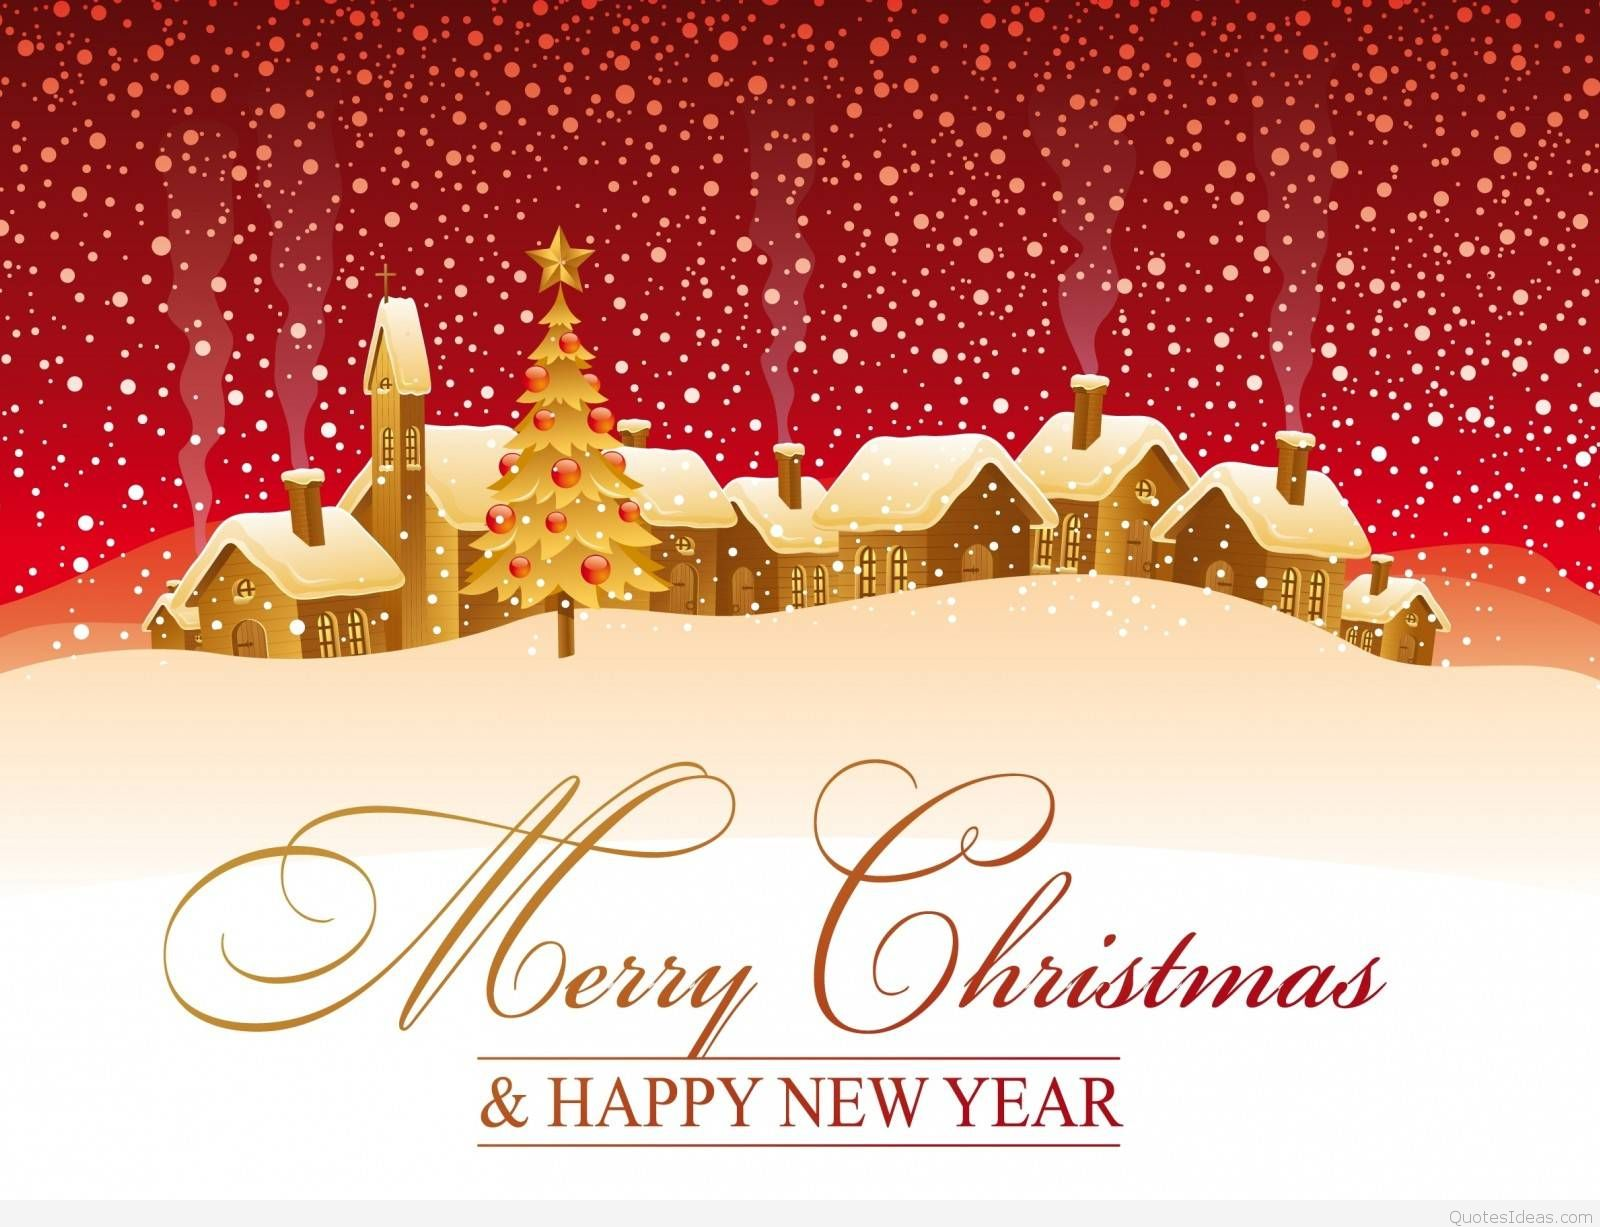 Merry Christmas & Happy New Year - Family Medical Center of Hastings